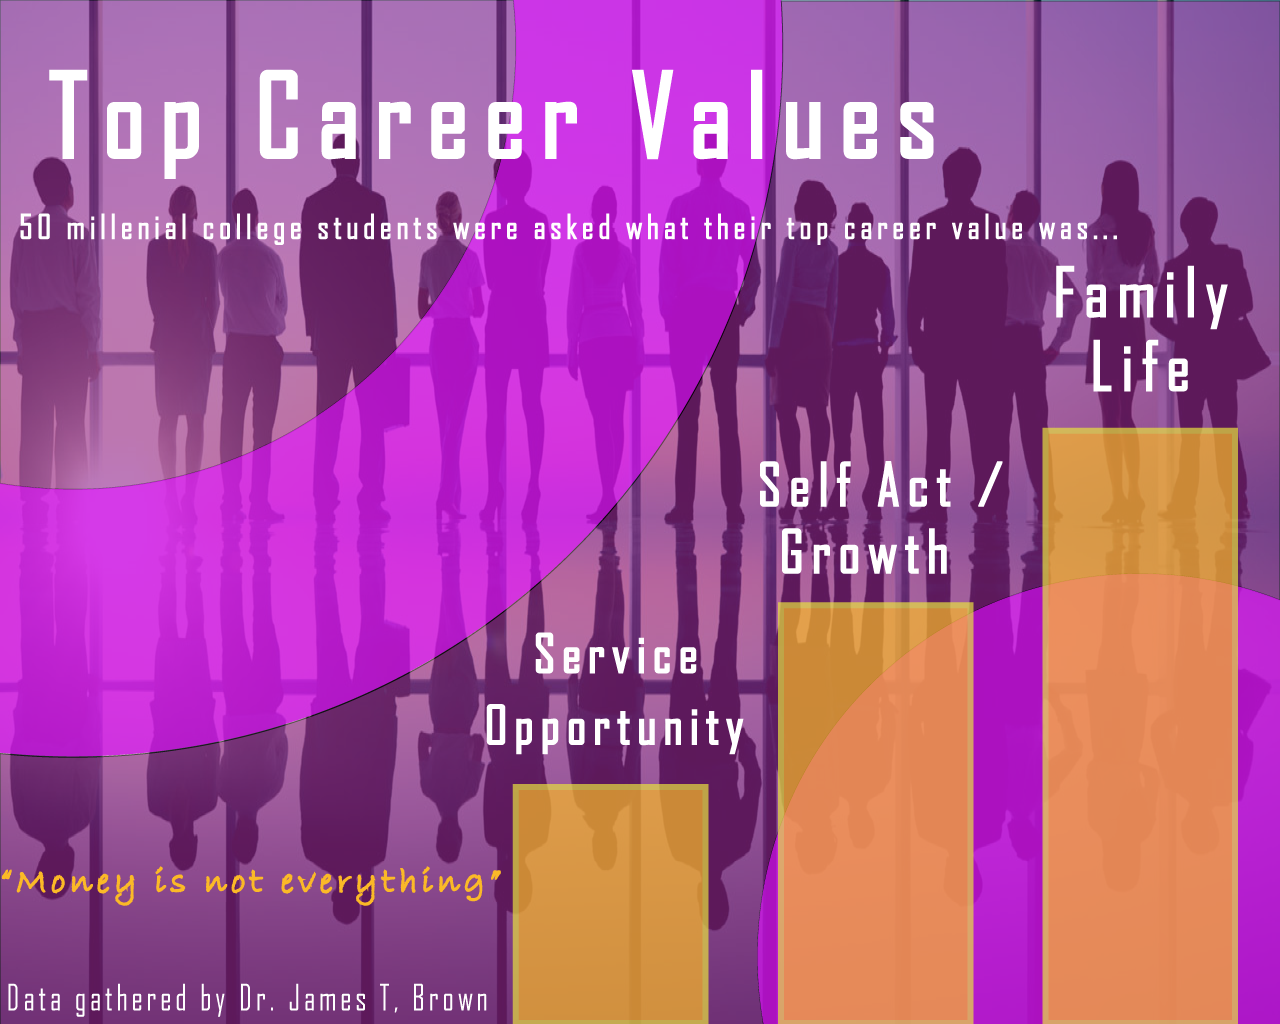 Career-Values-infographic